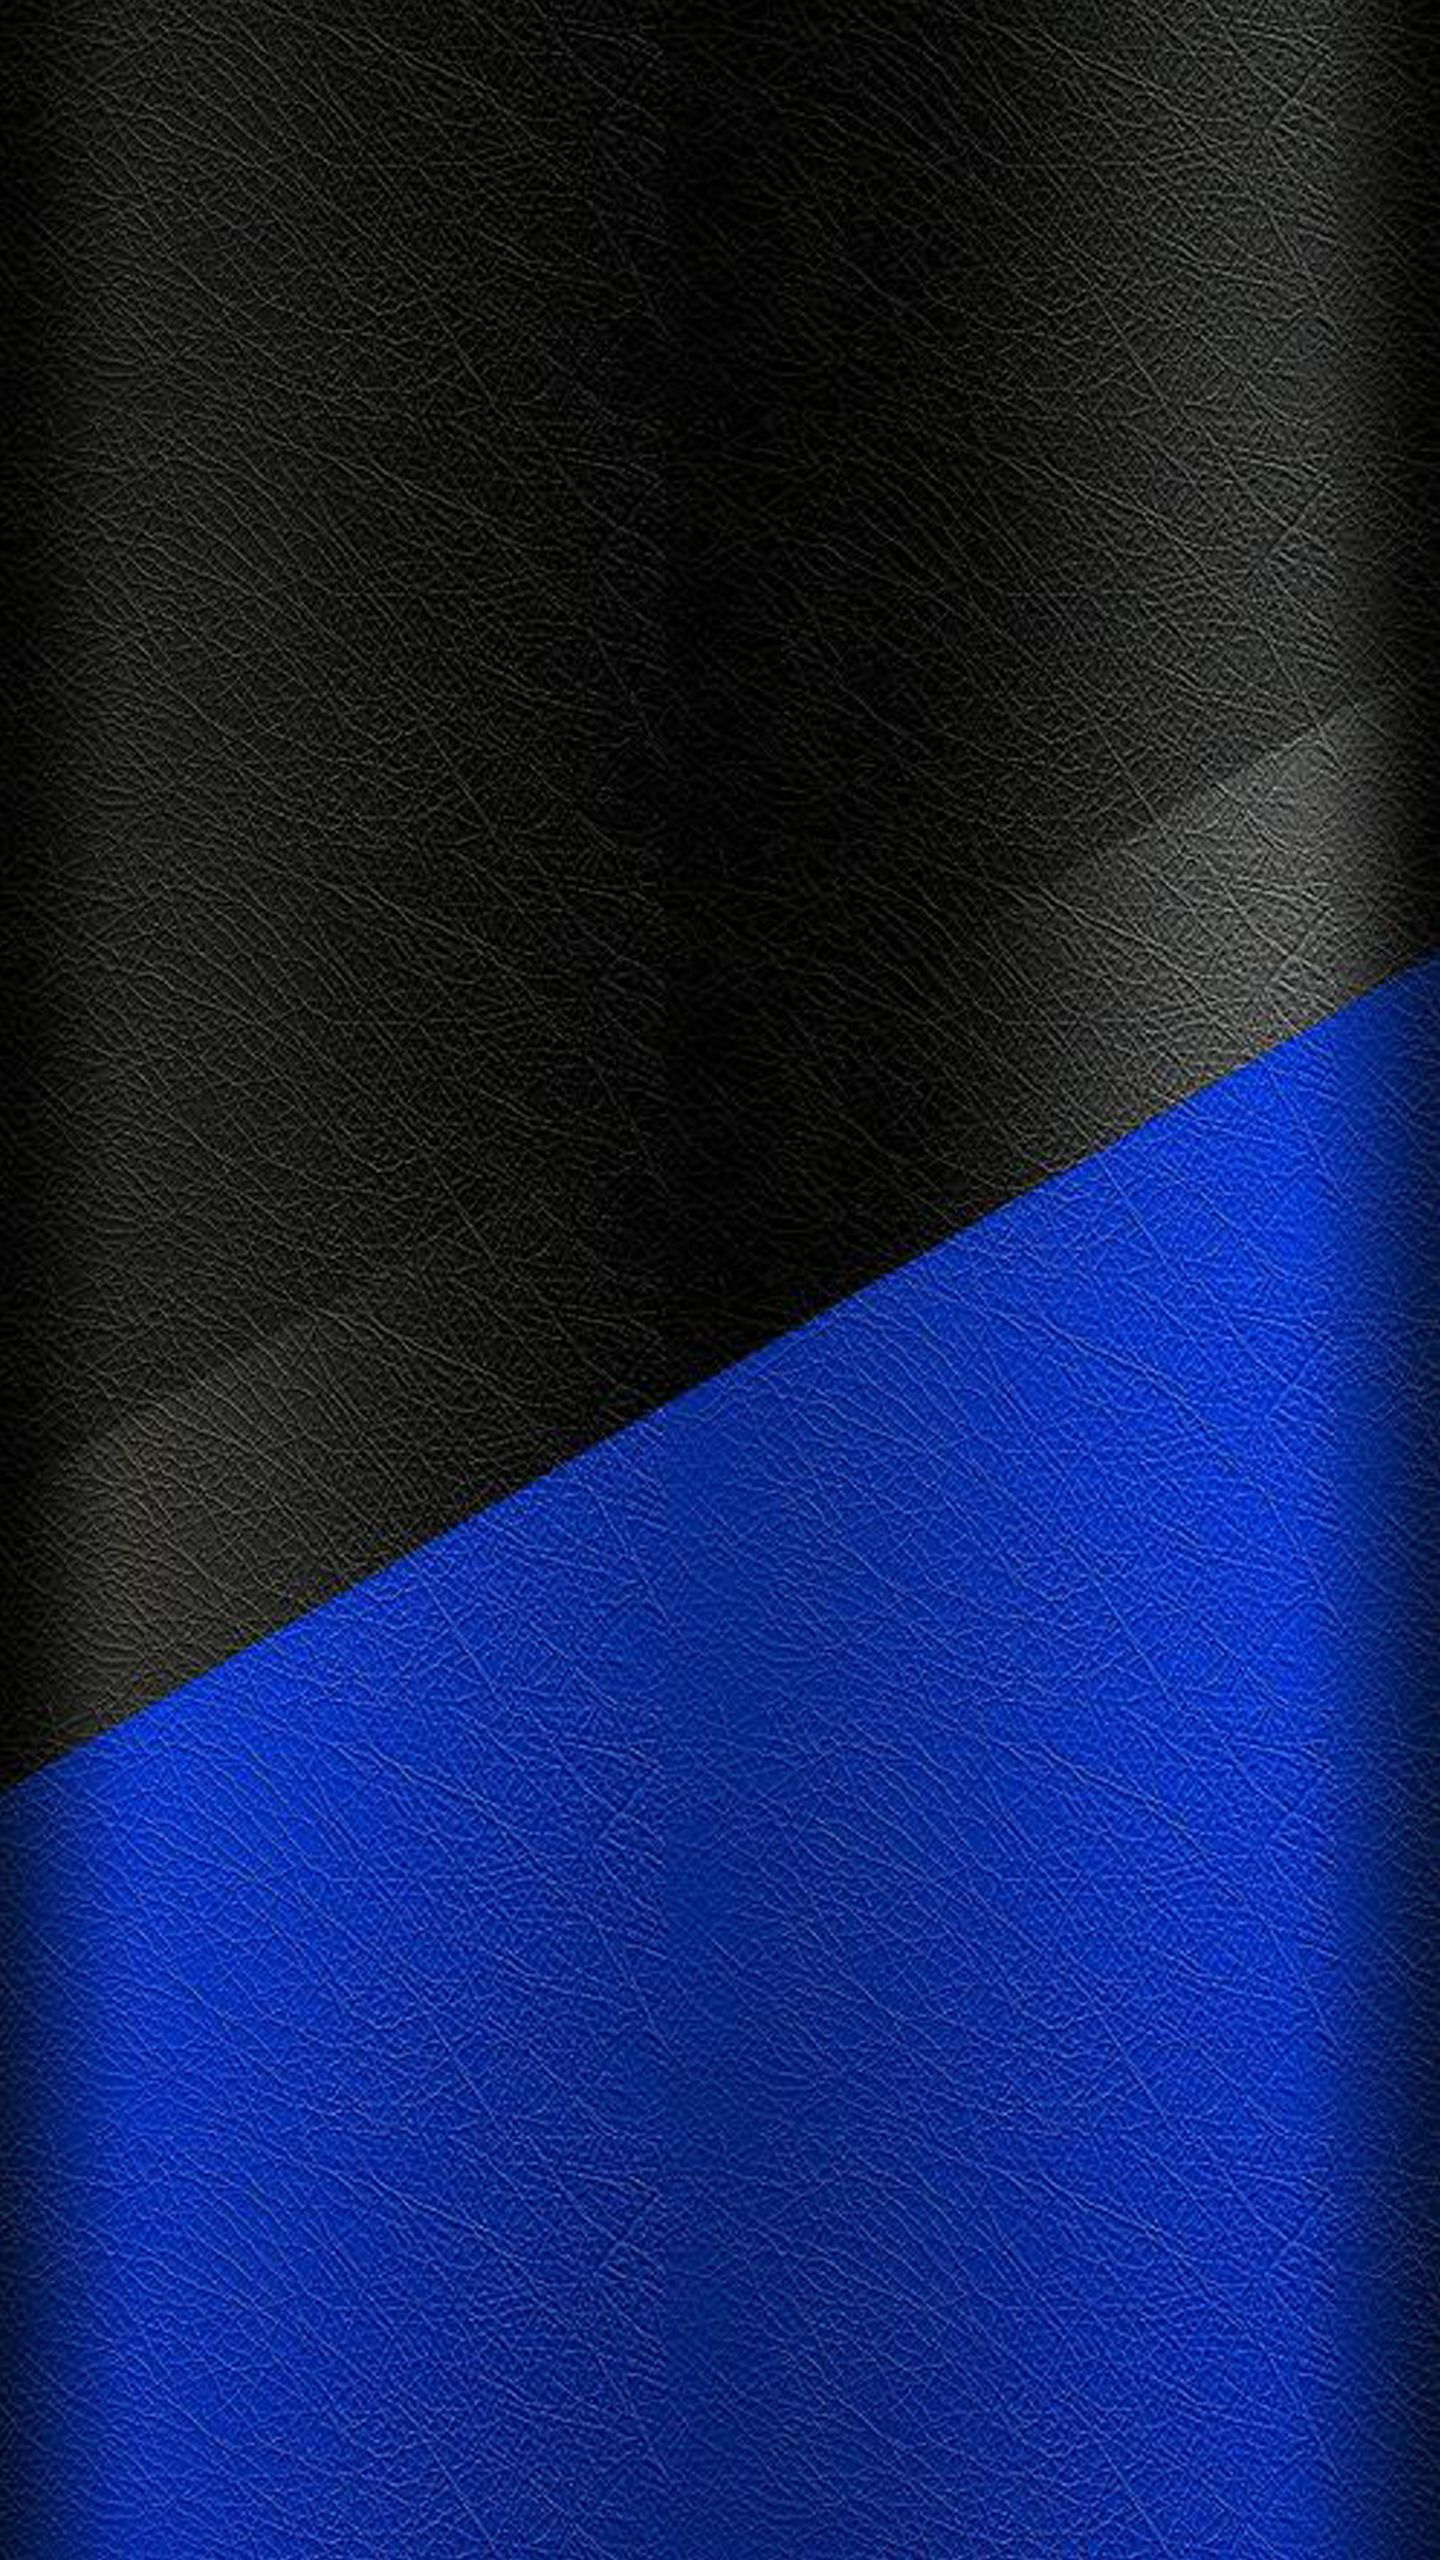 Samsung S7 Edge Wallpaper Dark S7 Edge Wallpaper 02 Black And Blue Leather Pattern